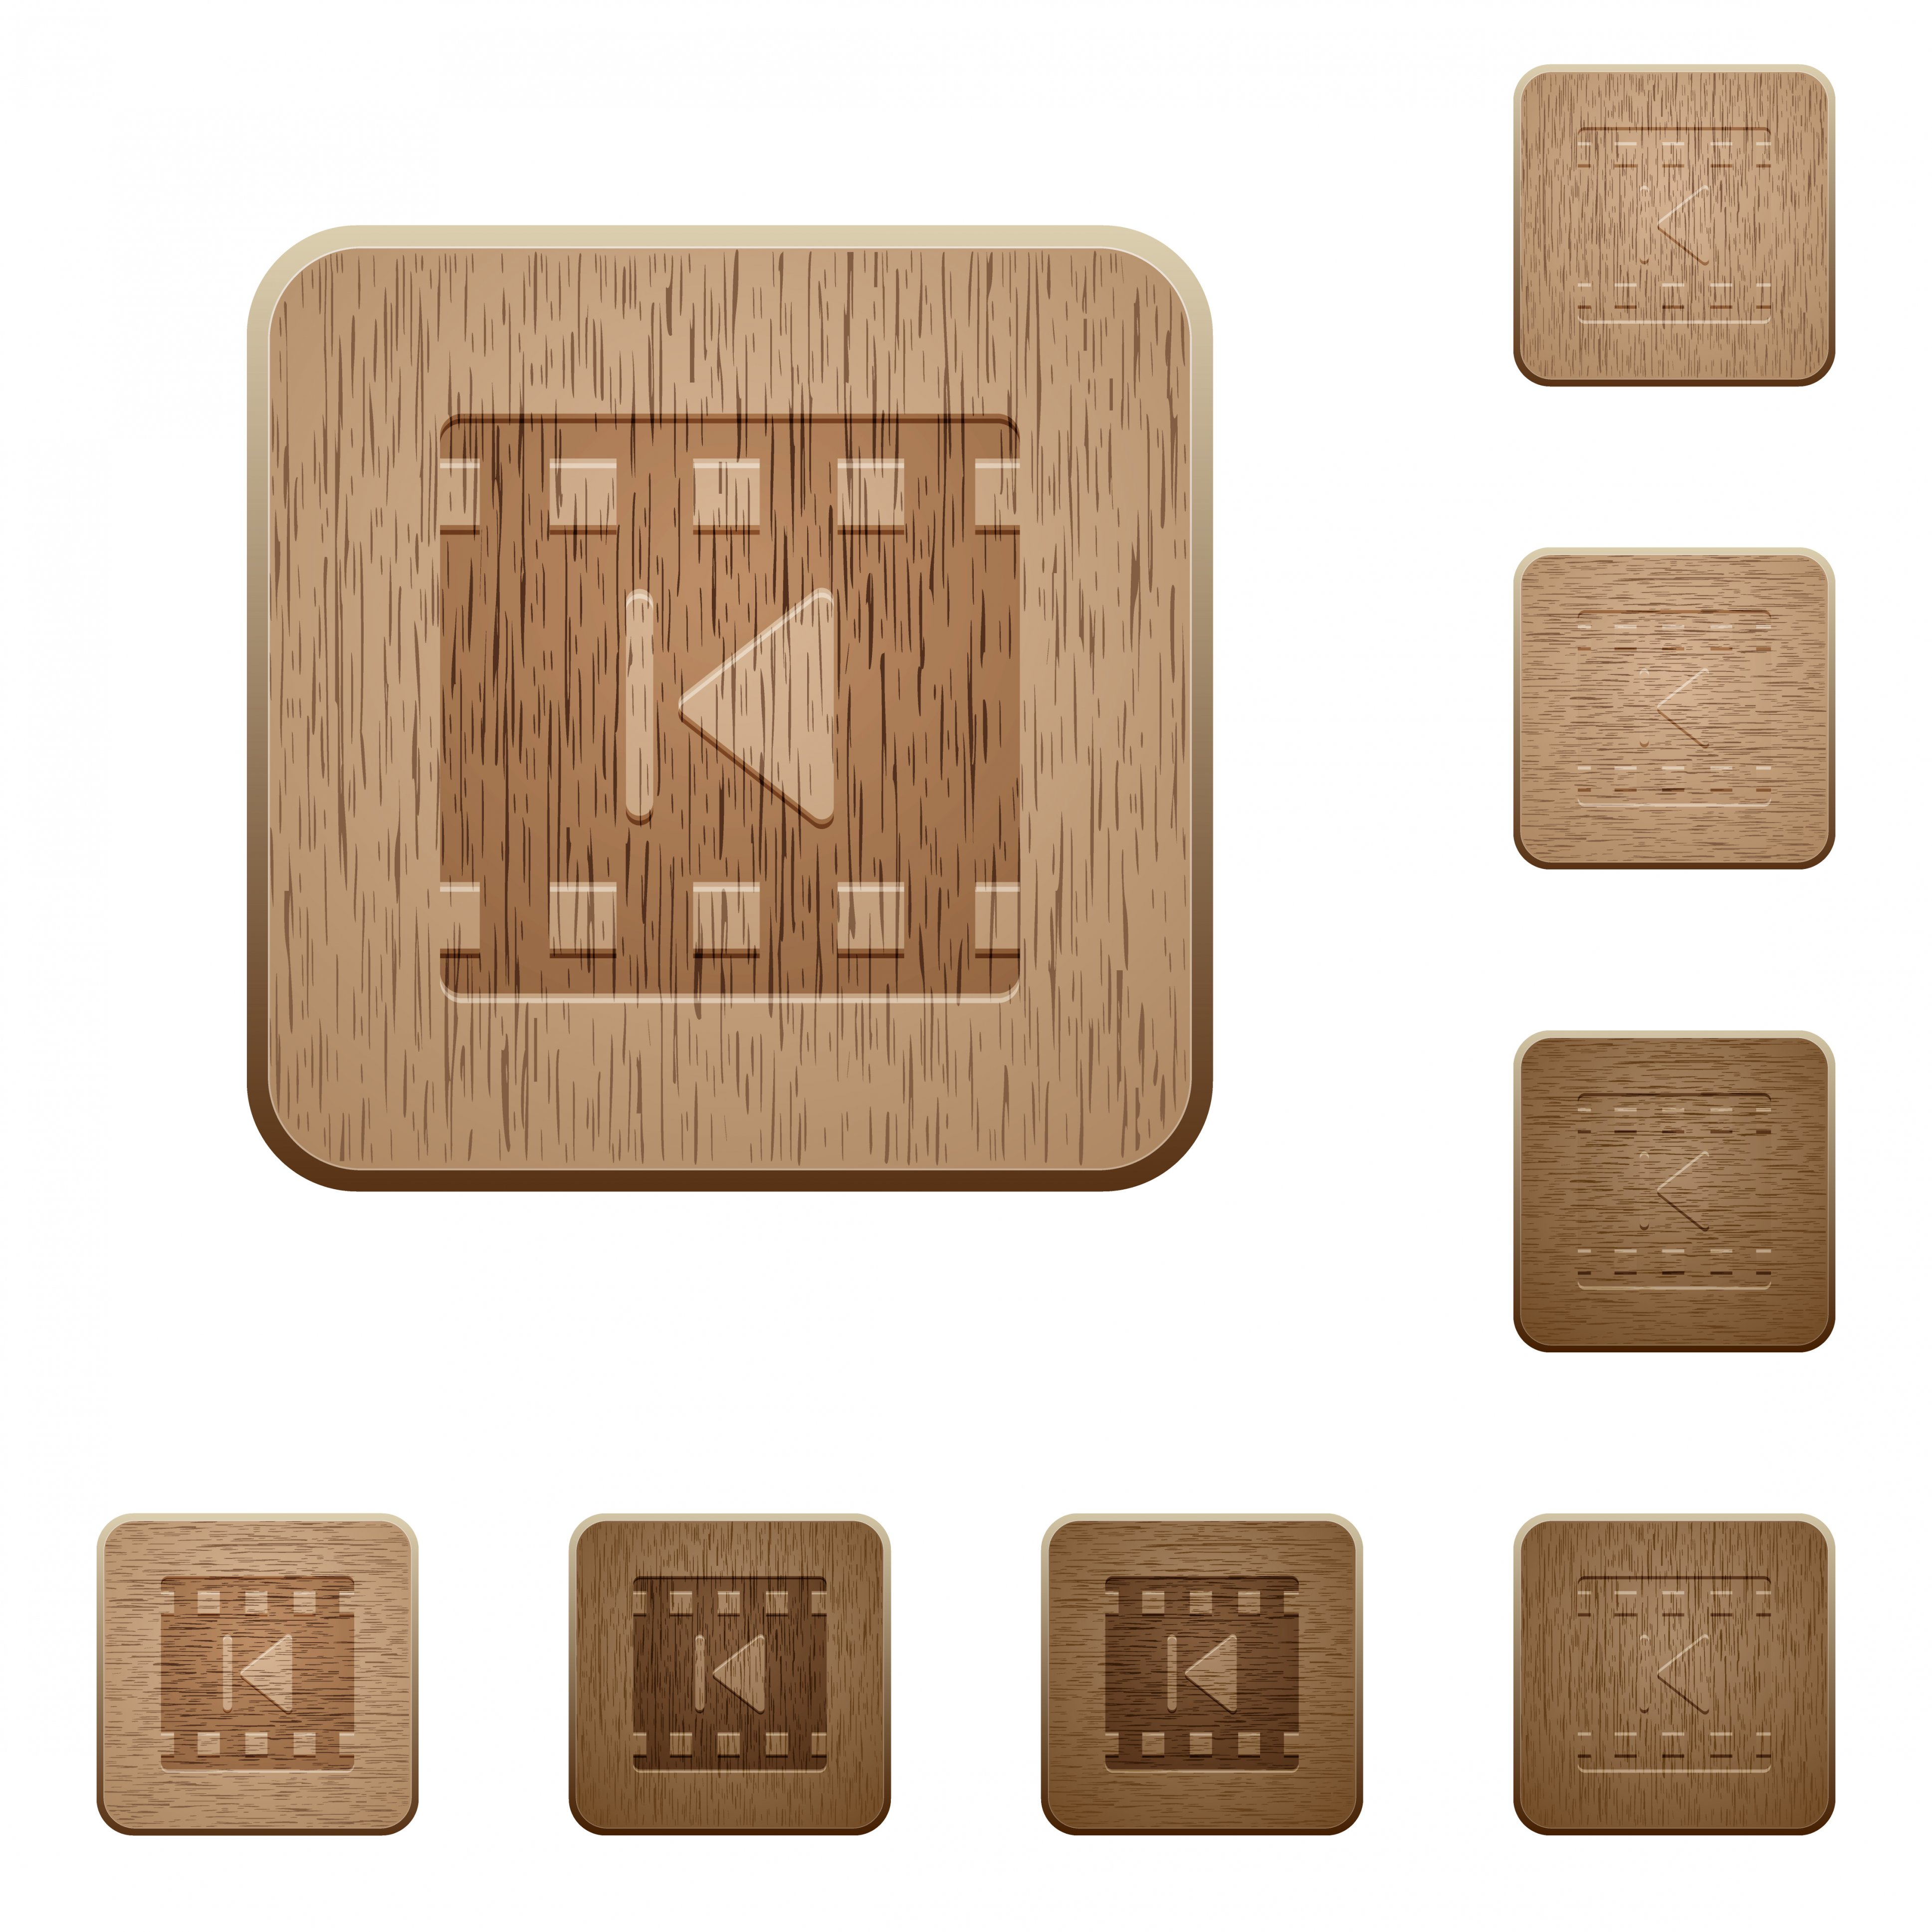 Previous movie on rounded square carved wooden button styles - Free image